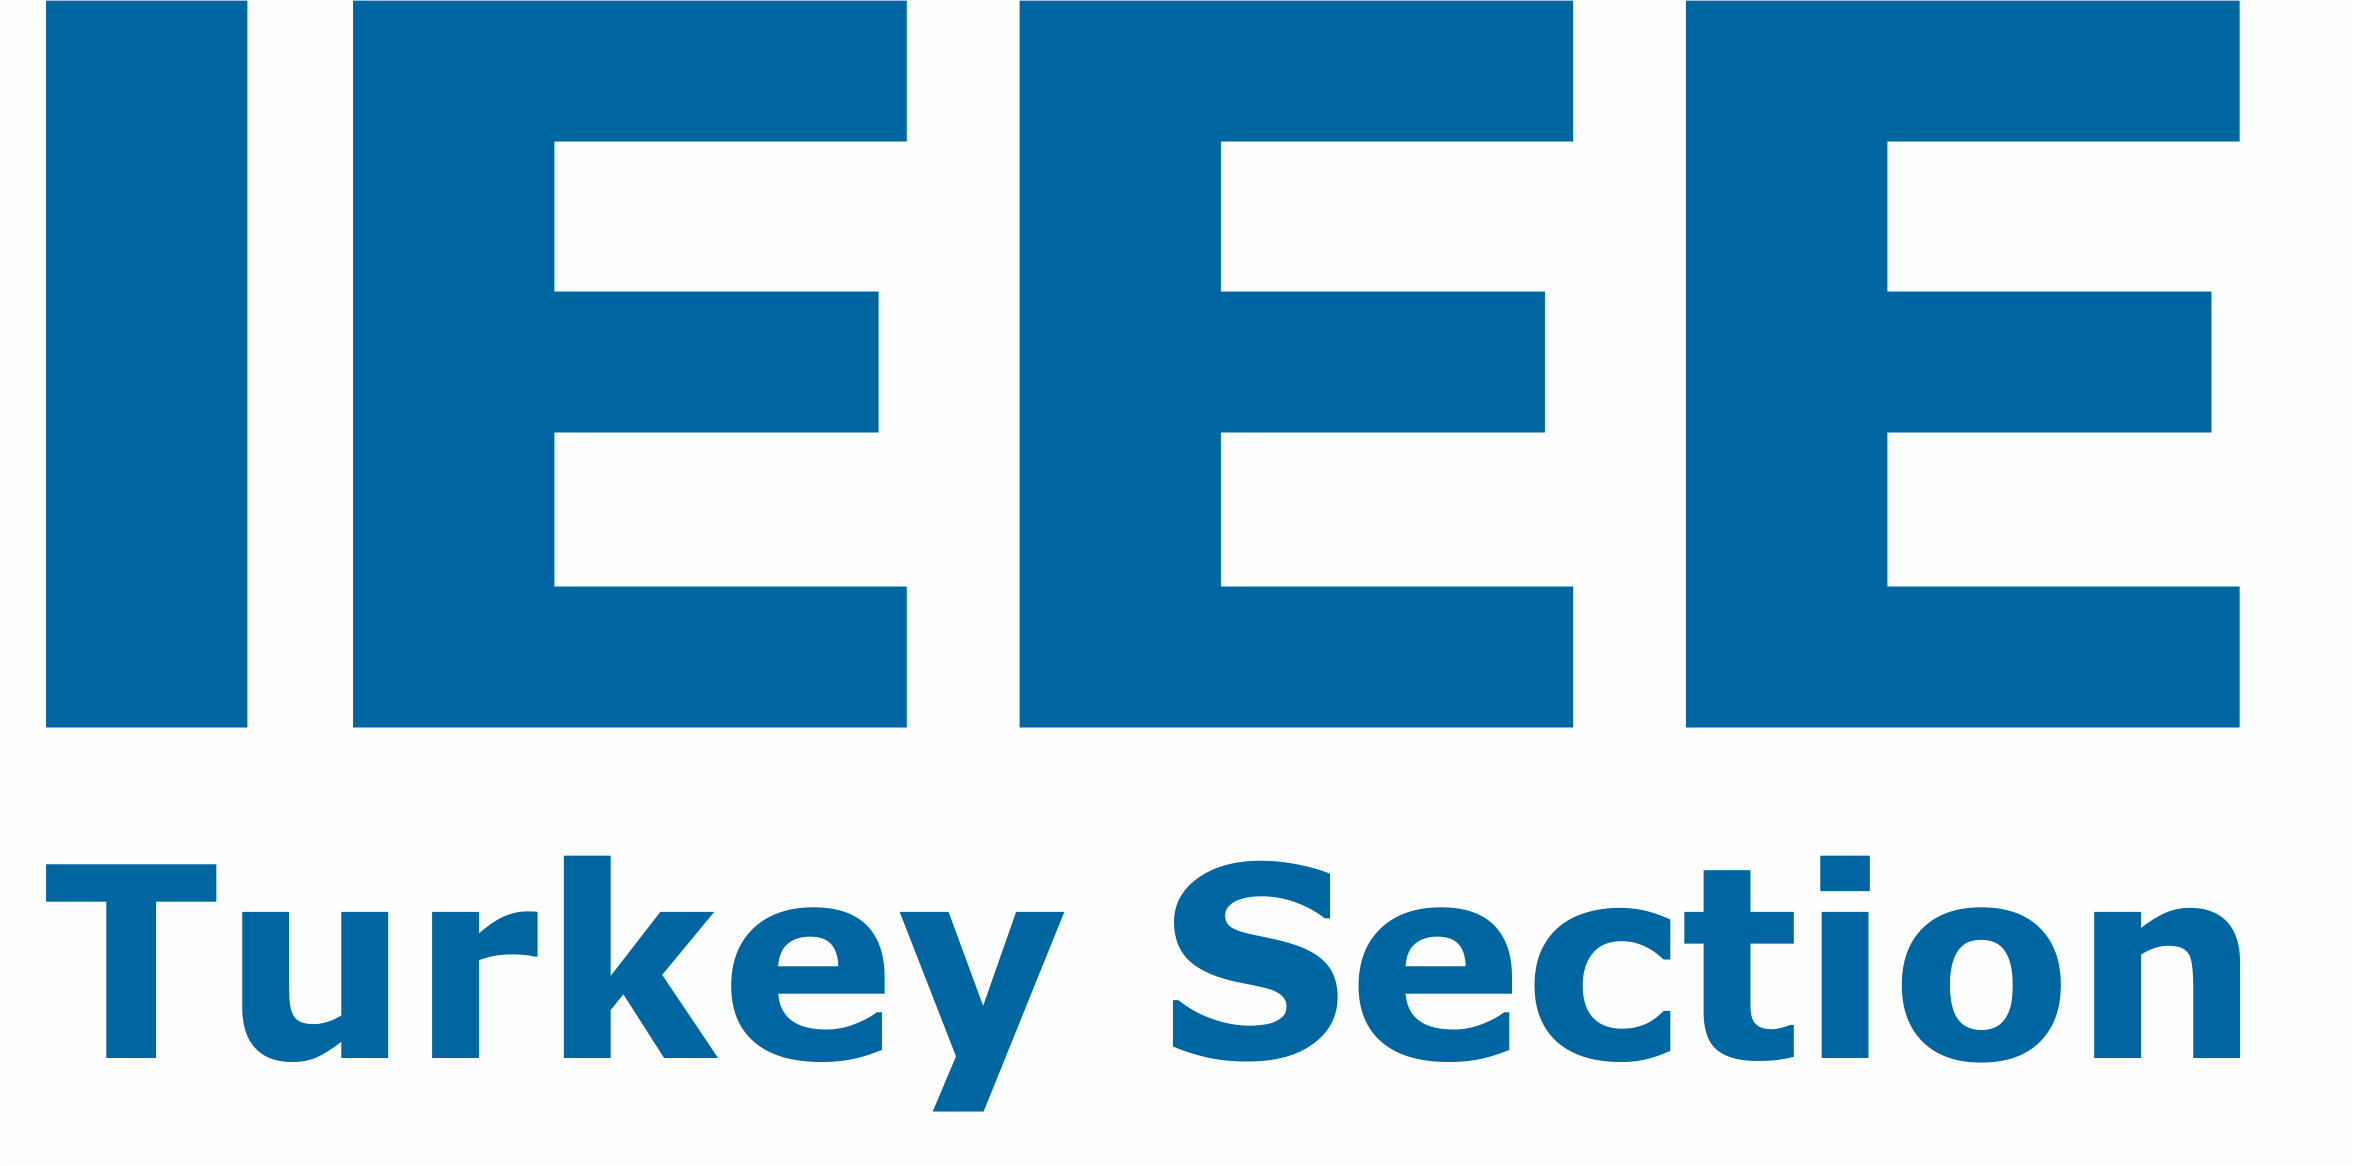 About IEEE Turkey.